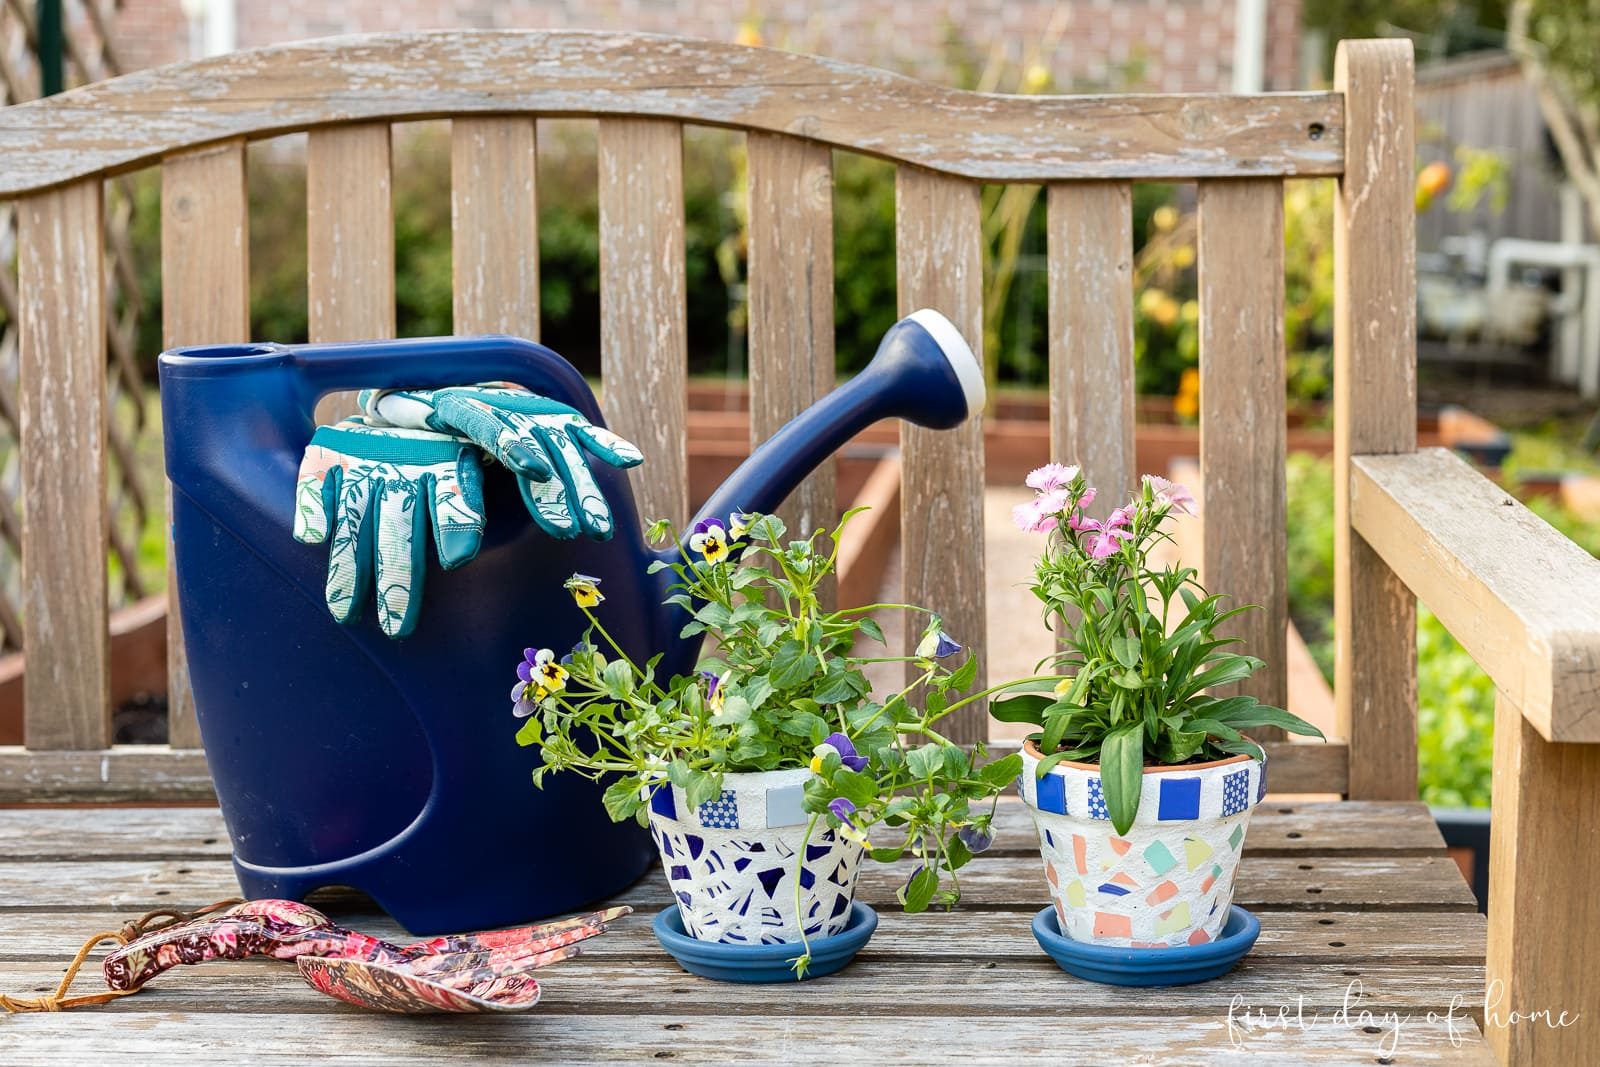 Finished mosaic flower pots with gardening tools and watering can on bench